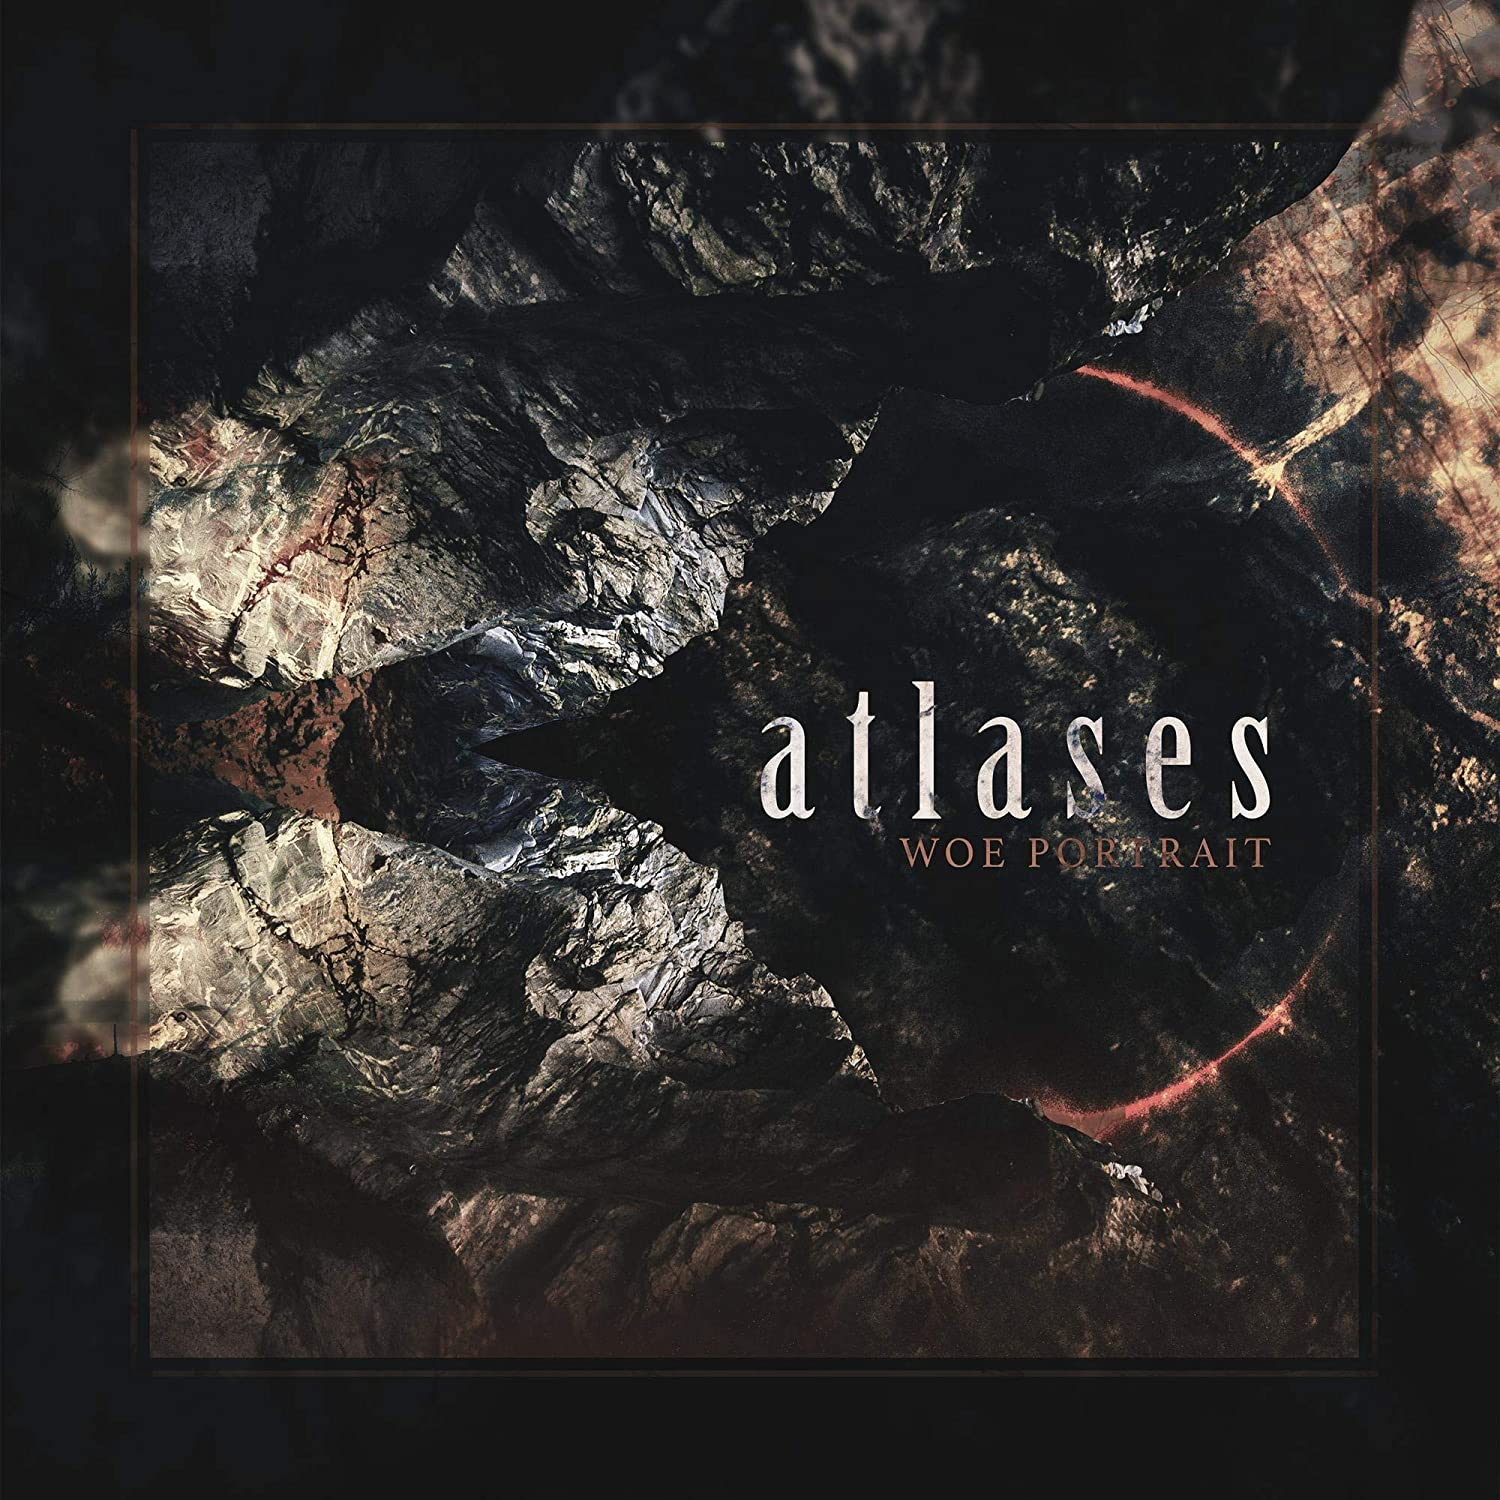 atlases woe portrait cover artwork